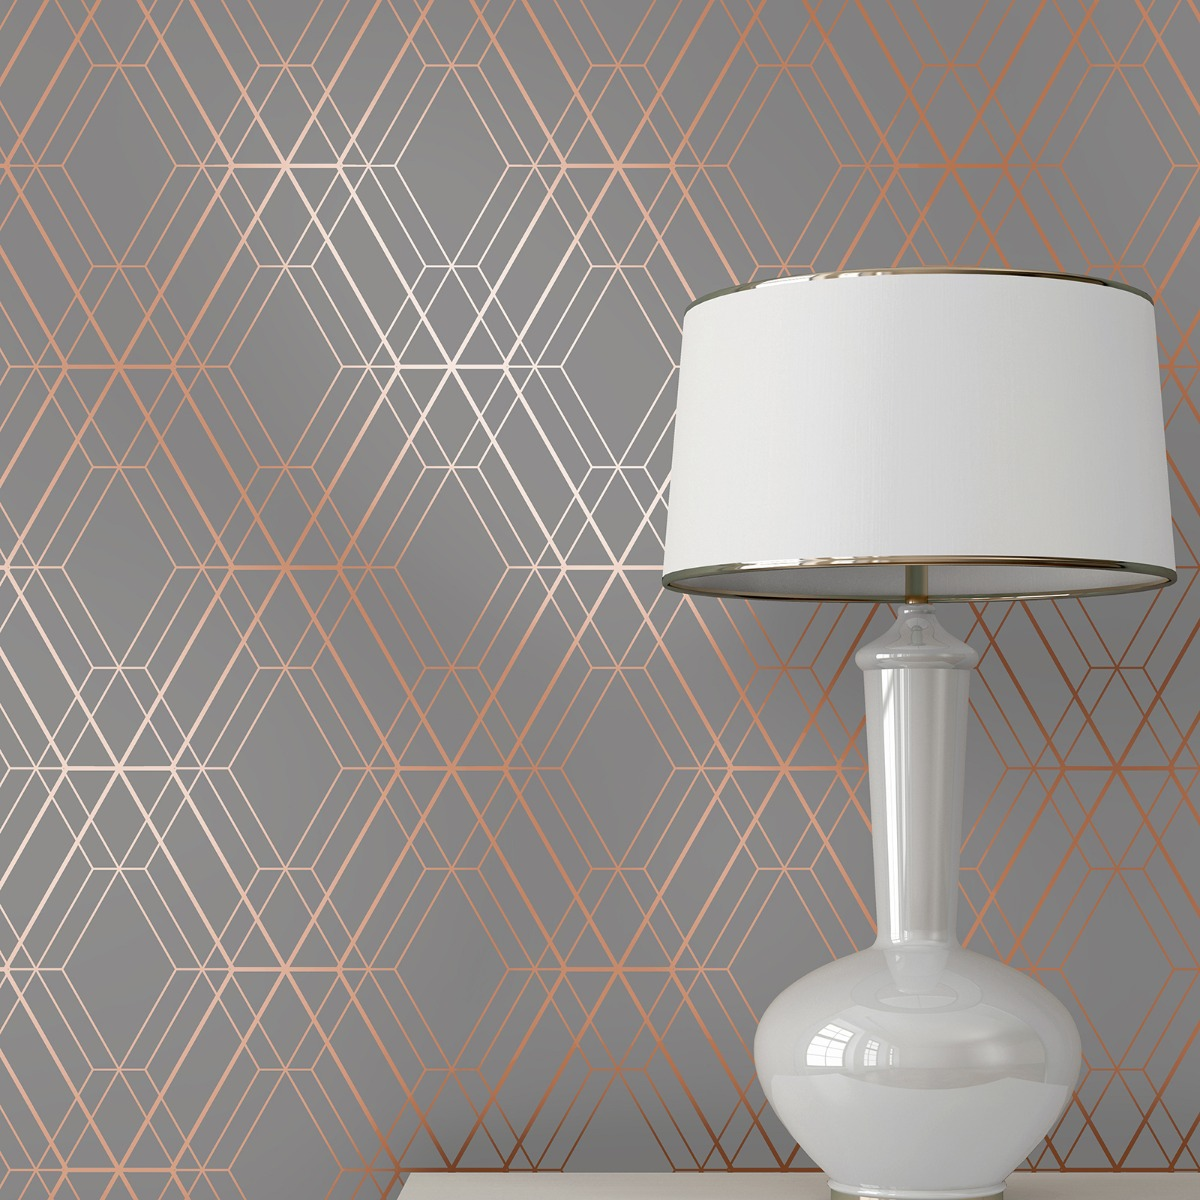 NAVY//GOLD CHARCOAL//COPPER WORLD OF WALLPAPER METRO ILLUSION GEOMETRIC METALLIC